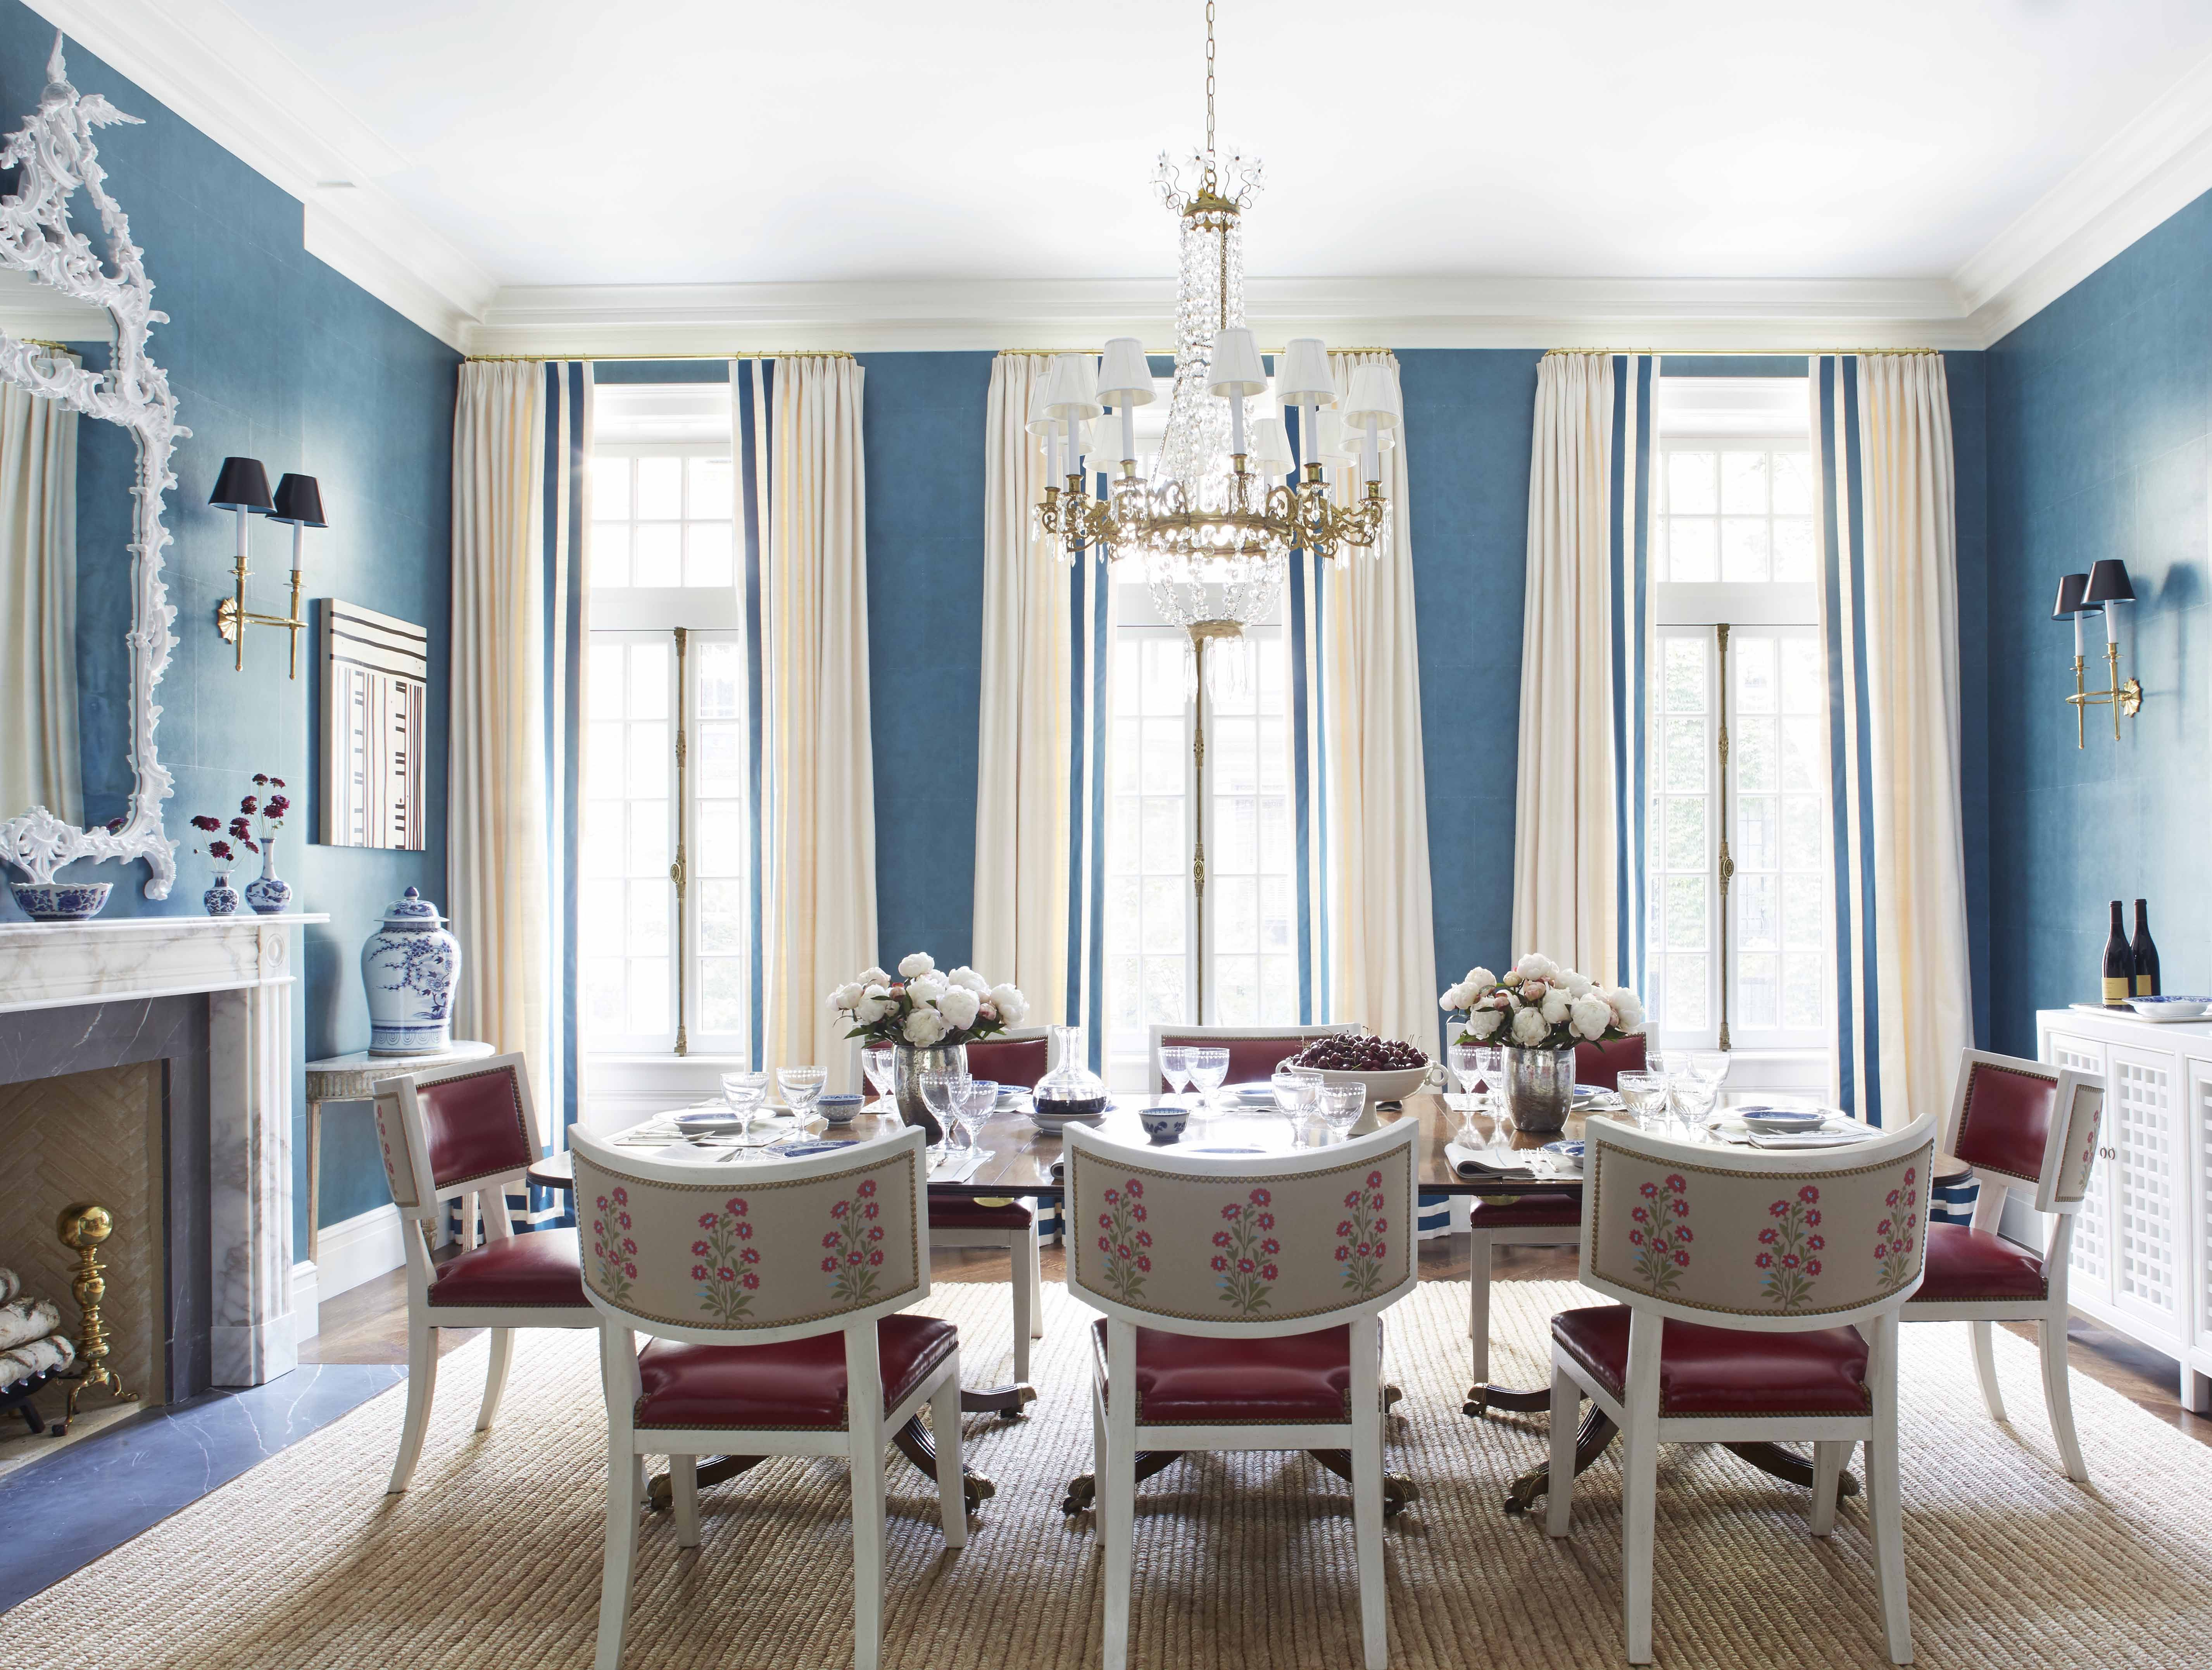 40 Designer Dining Rooms That Make Us Swoon